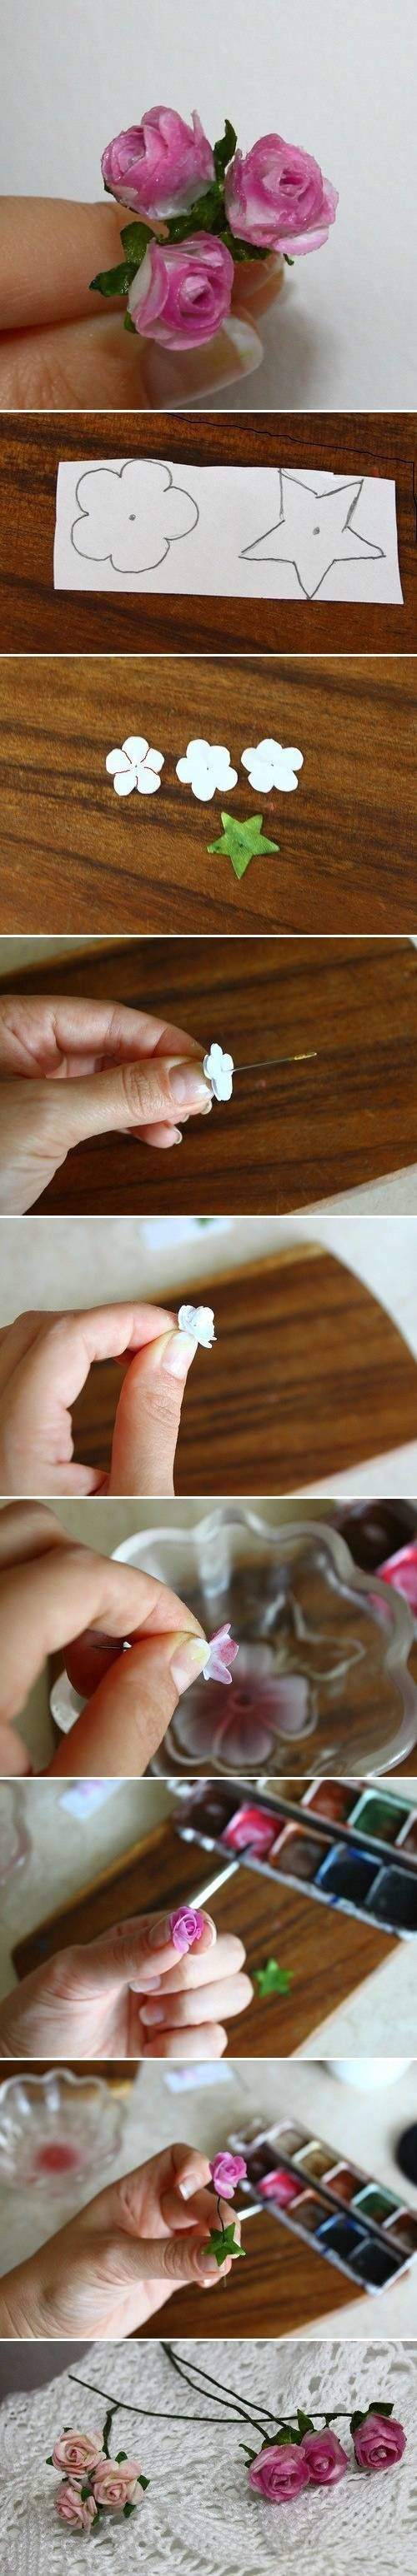 How To Make Delicate Mini Roses Step By Step Diy Tutorial